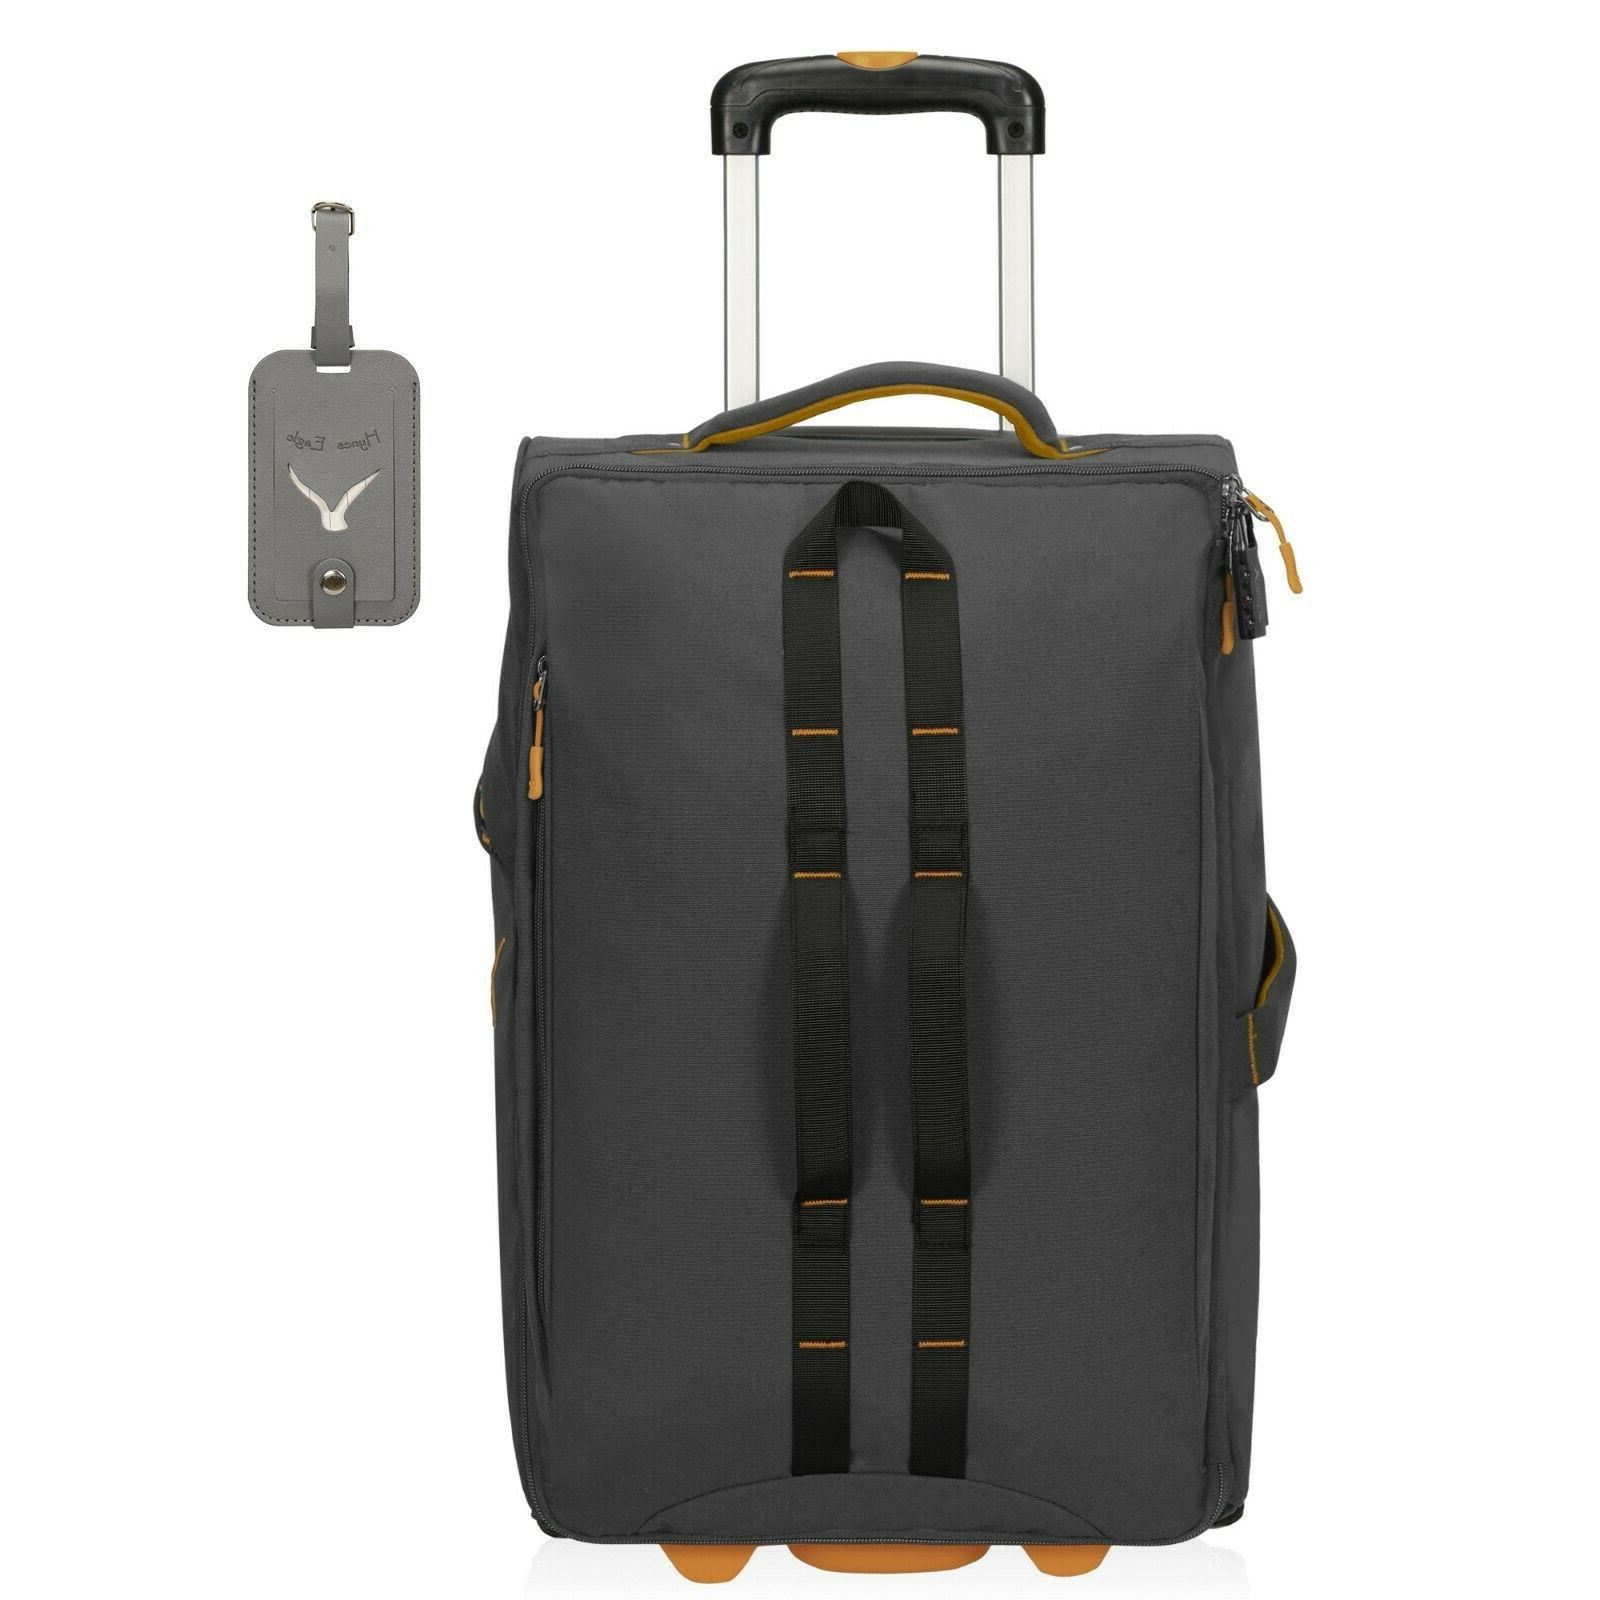 Carry on Luggage Rolling Wheeled Checked Suitcase 21''